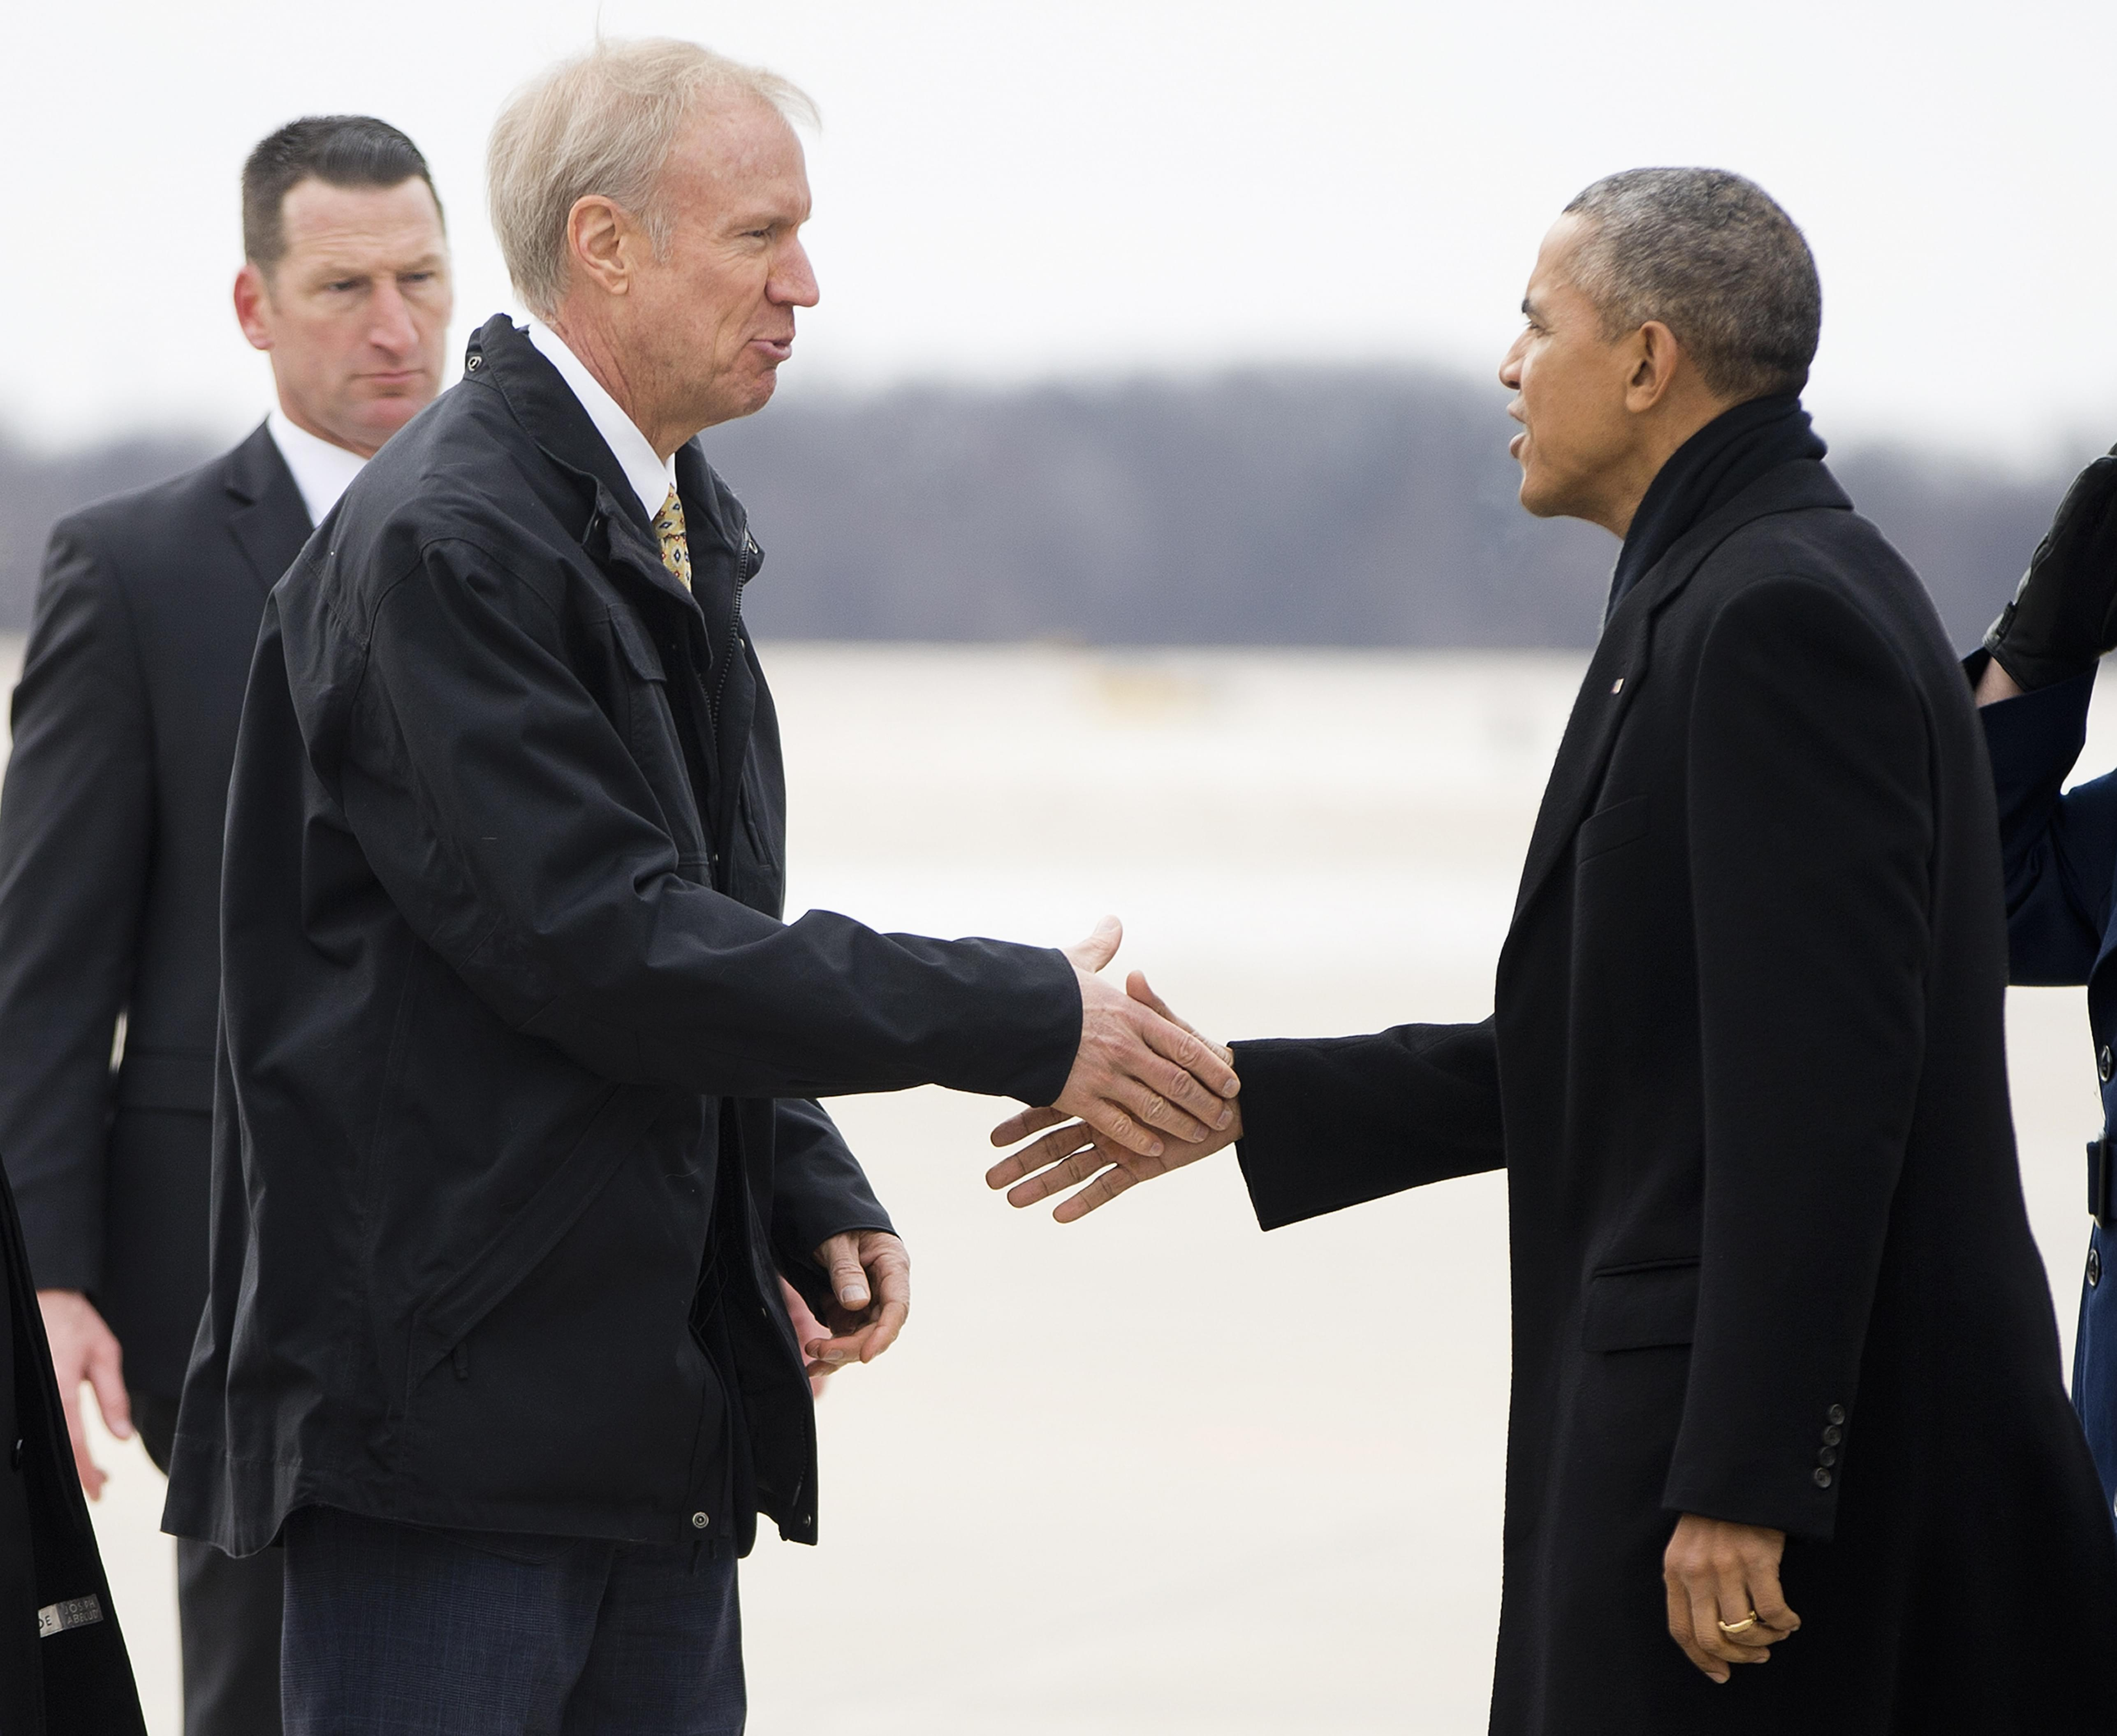 President Barack Obama is greeted by Illinois Gov. Bruce Rauner on the tarmac during his arrival on Air Force One at Abraham Lincoln Capitol Airport in Springfield Wednesday.